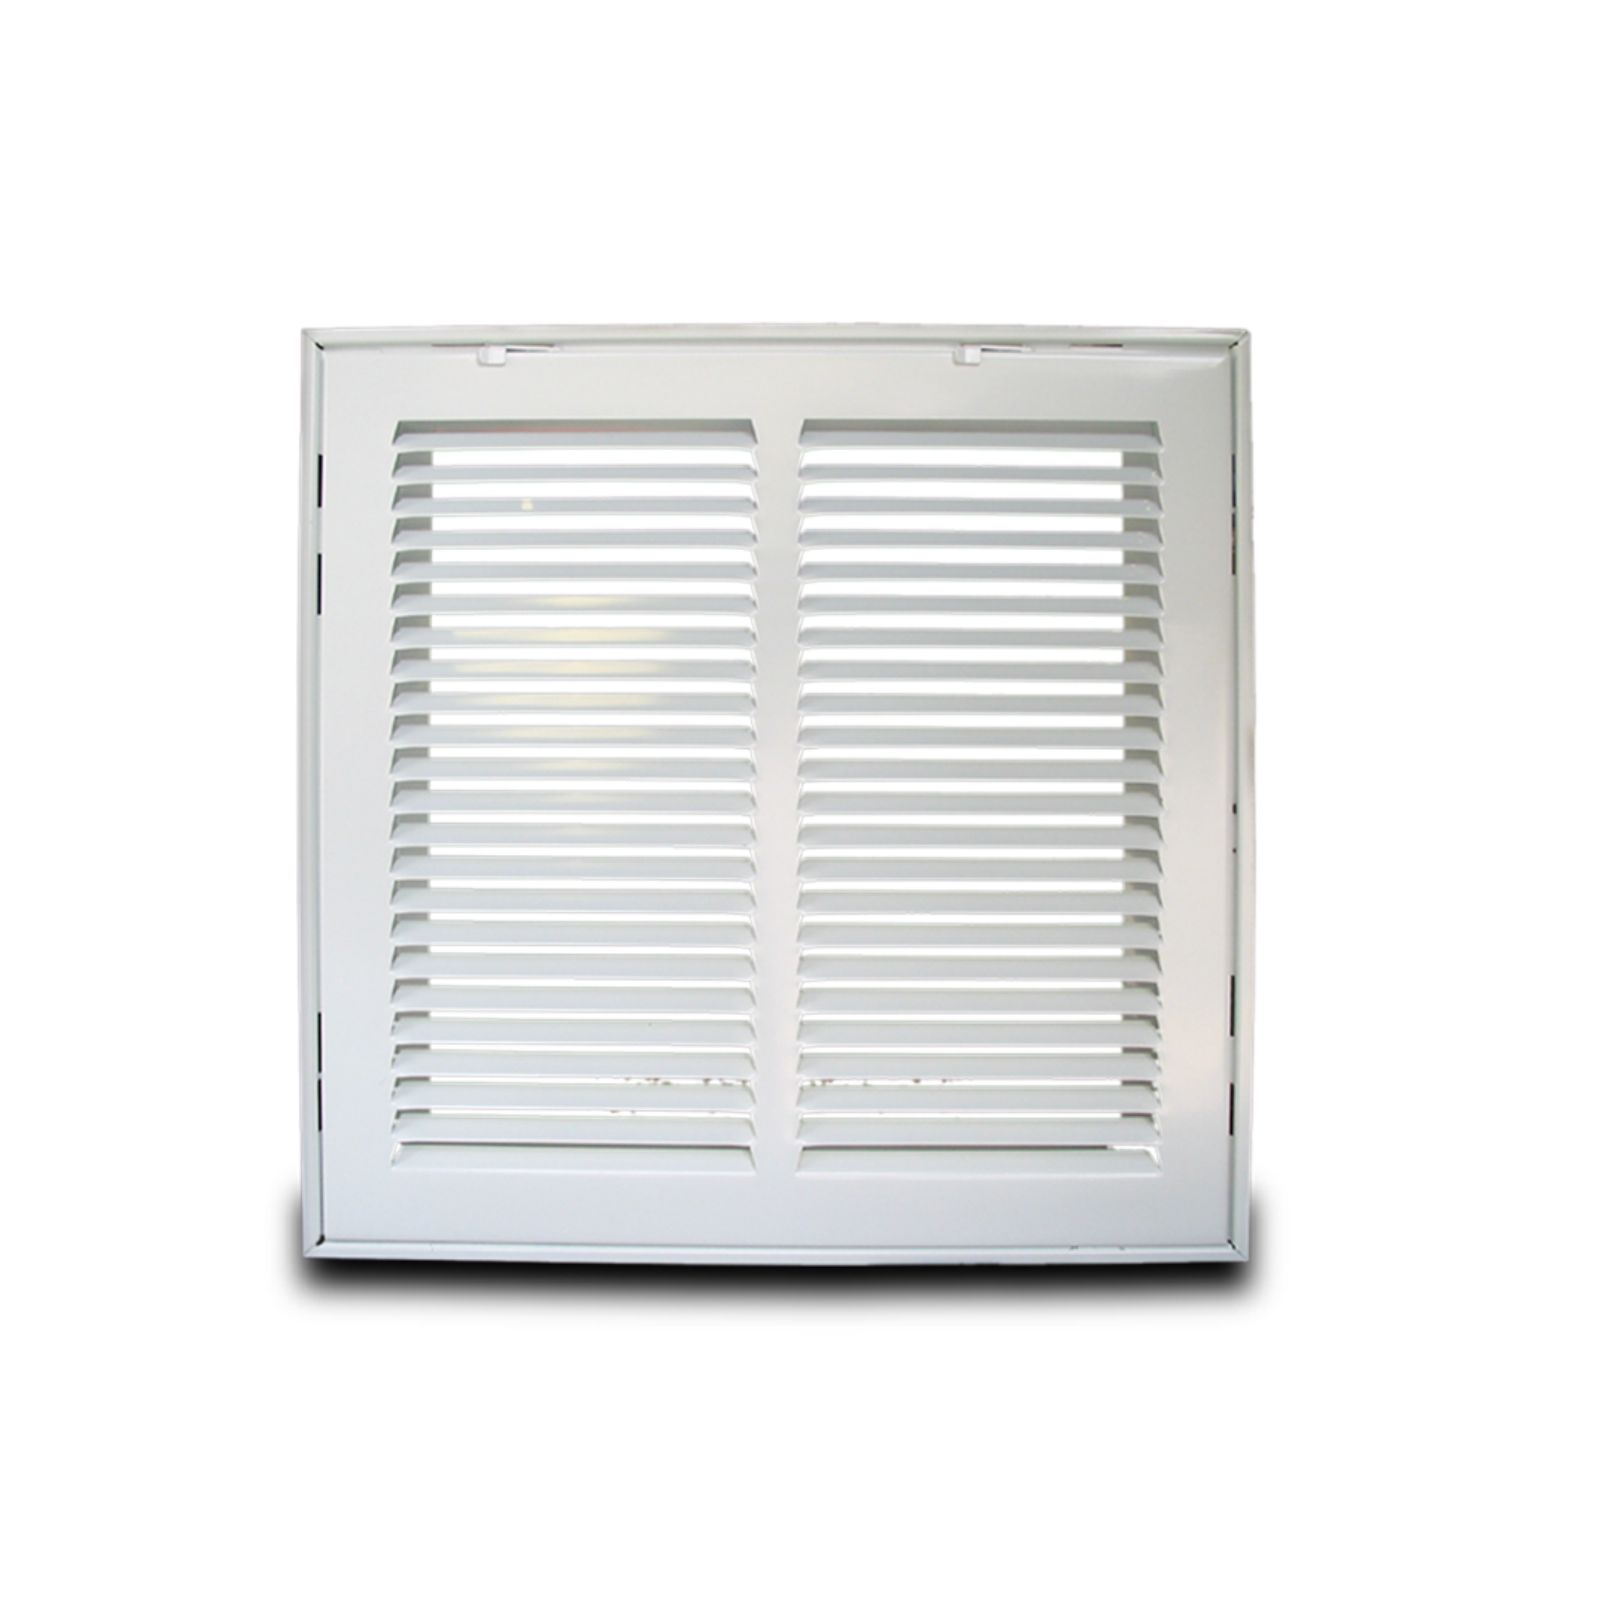 "Metal-Fab MFRFG2012W - Metal Fab Return Filter Grille, White, 20"" X 12"""